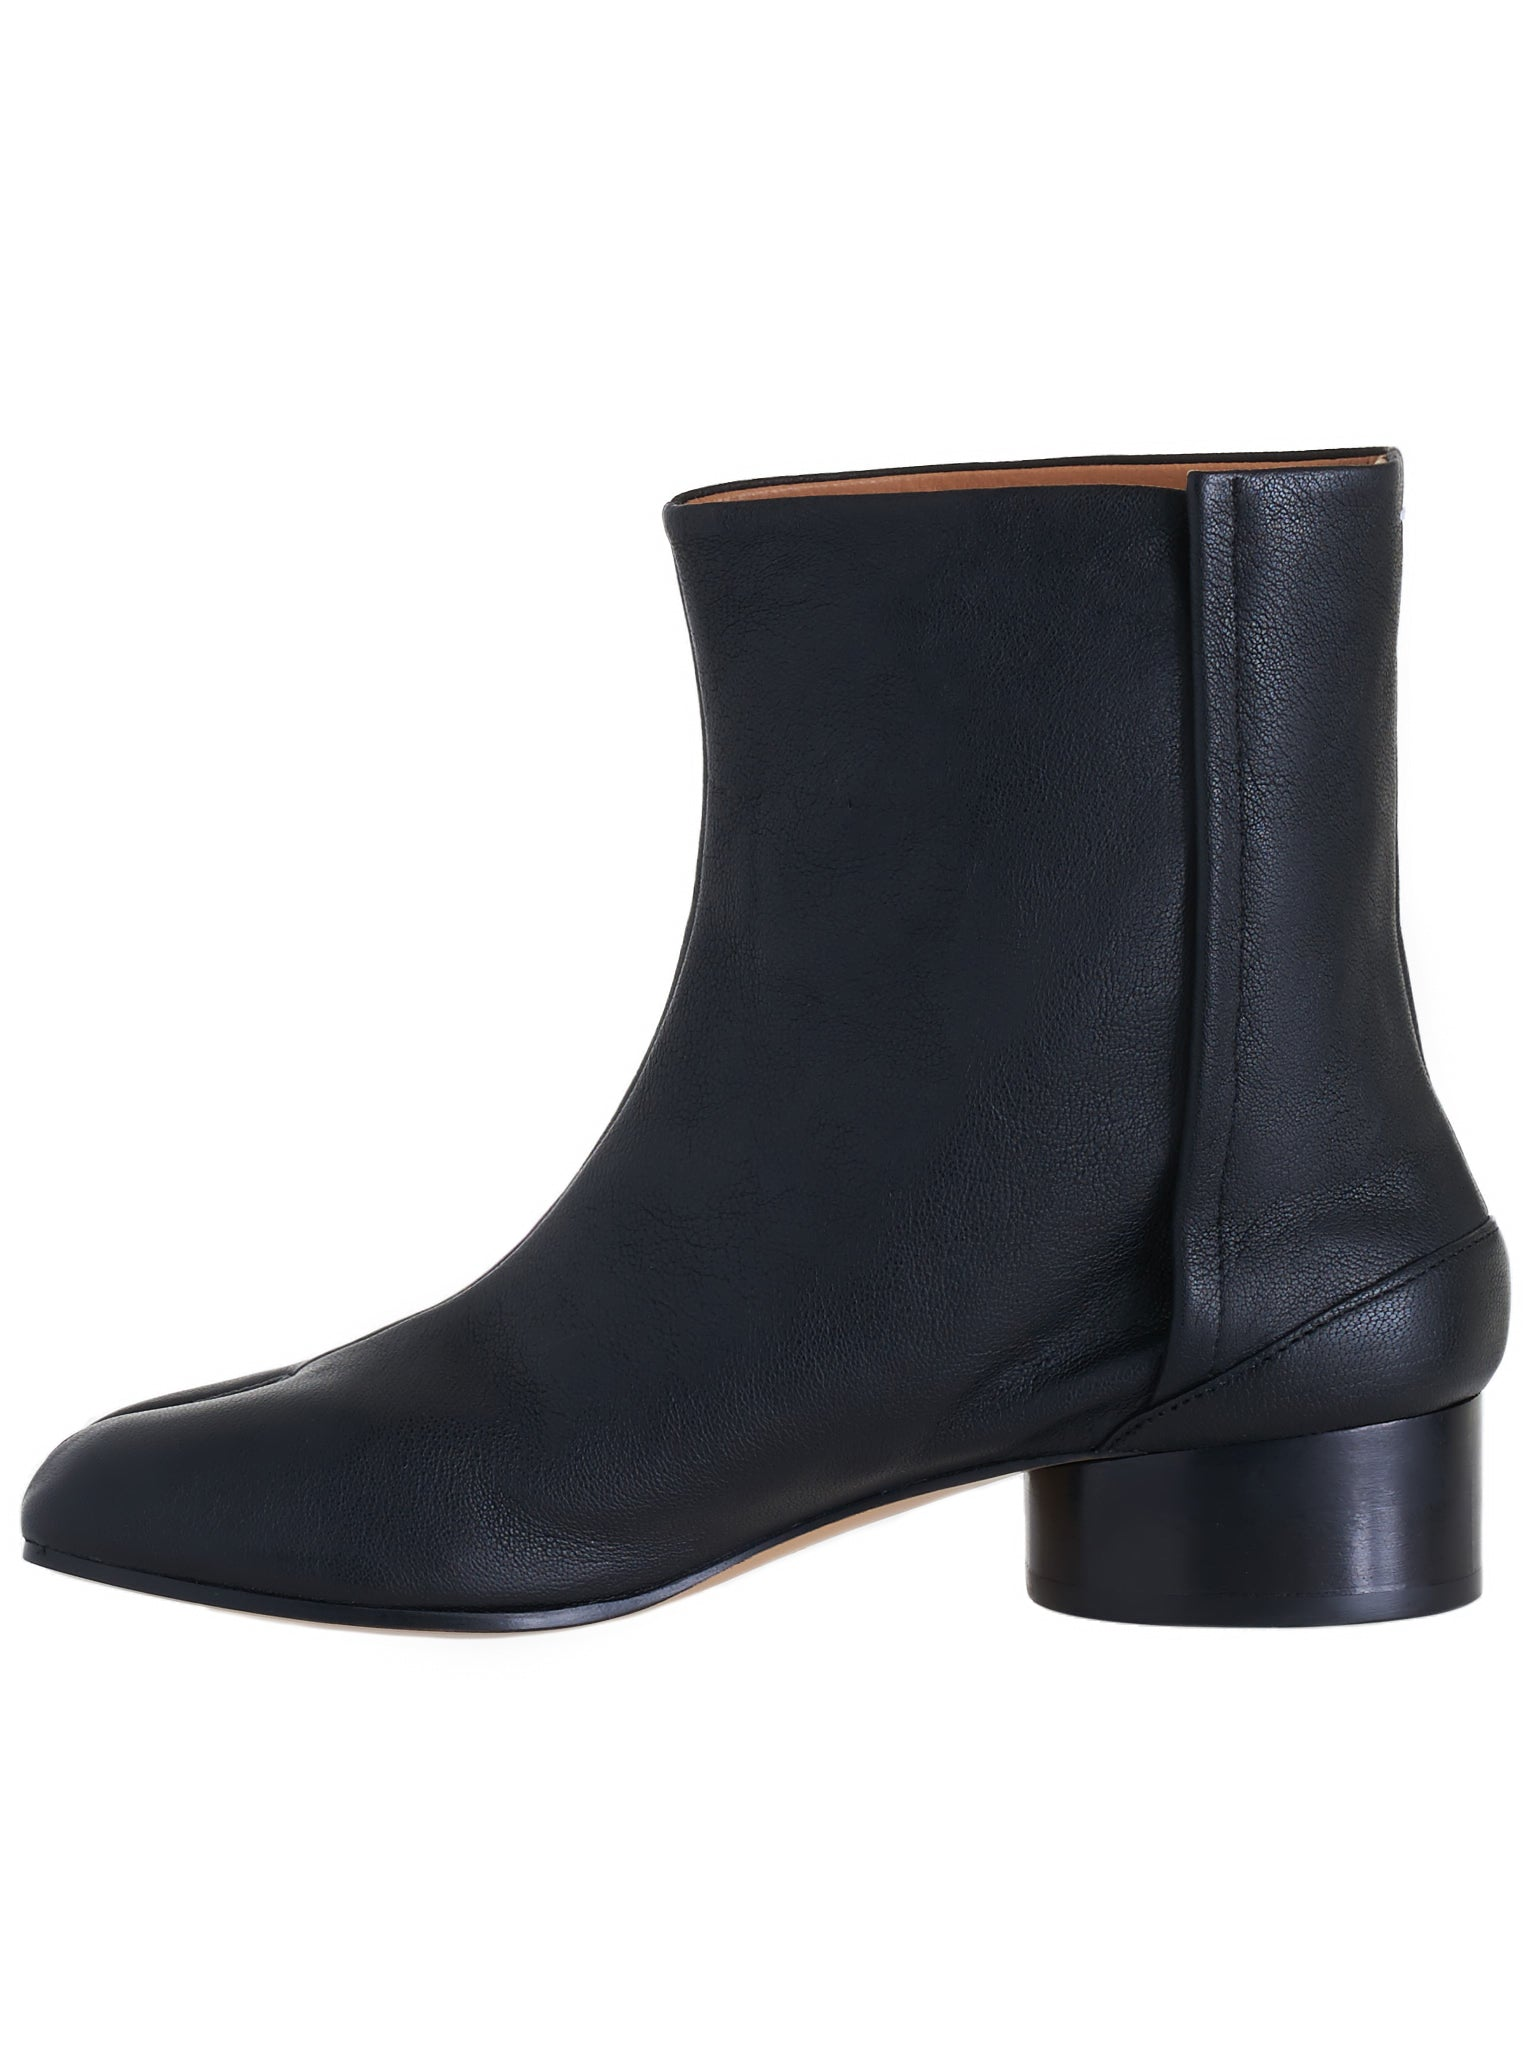 Maison Margiela Tabi Boot | H.Lorenzo - side 2